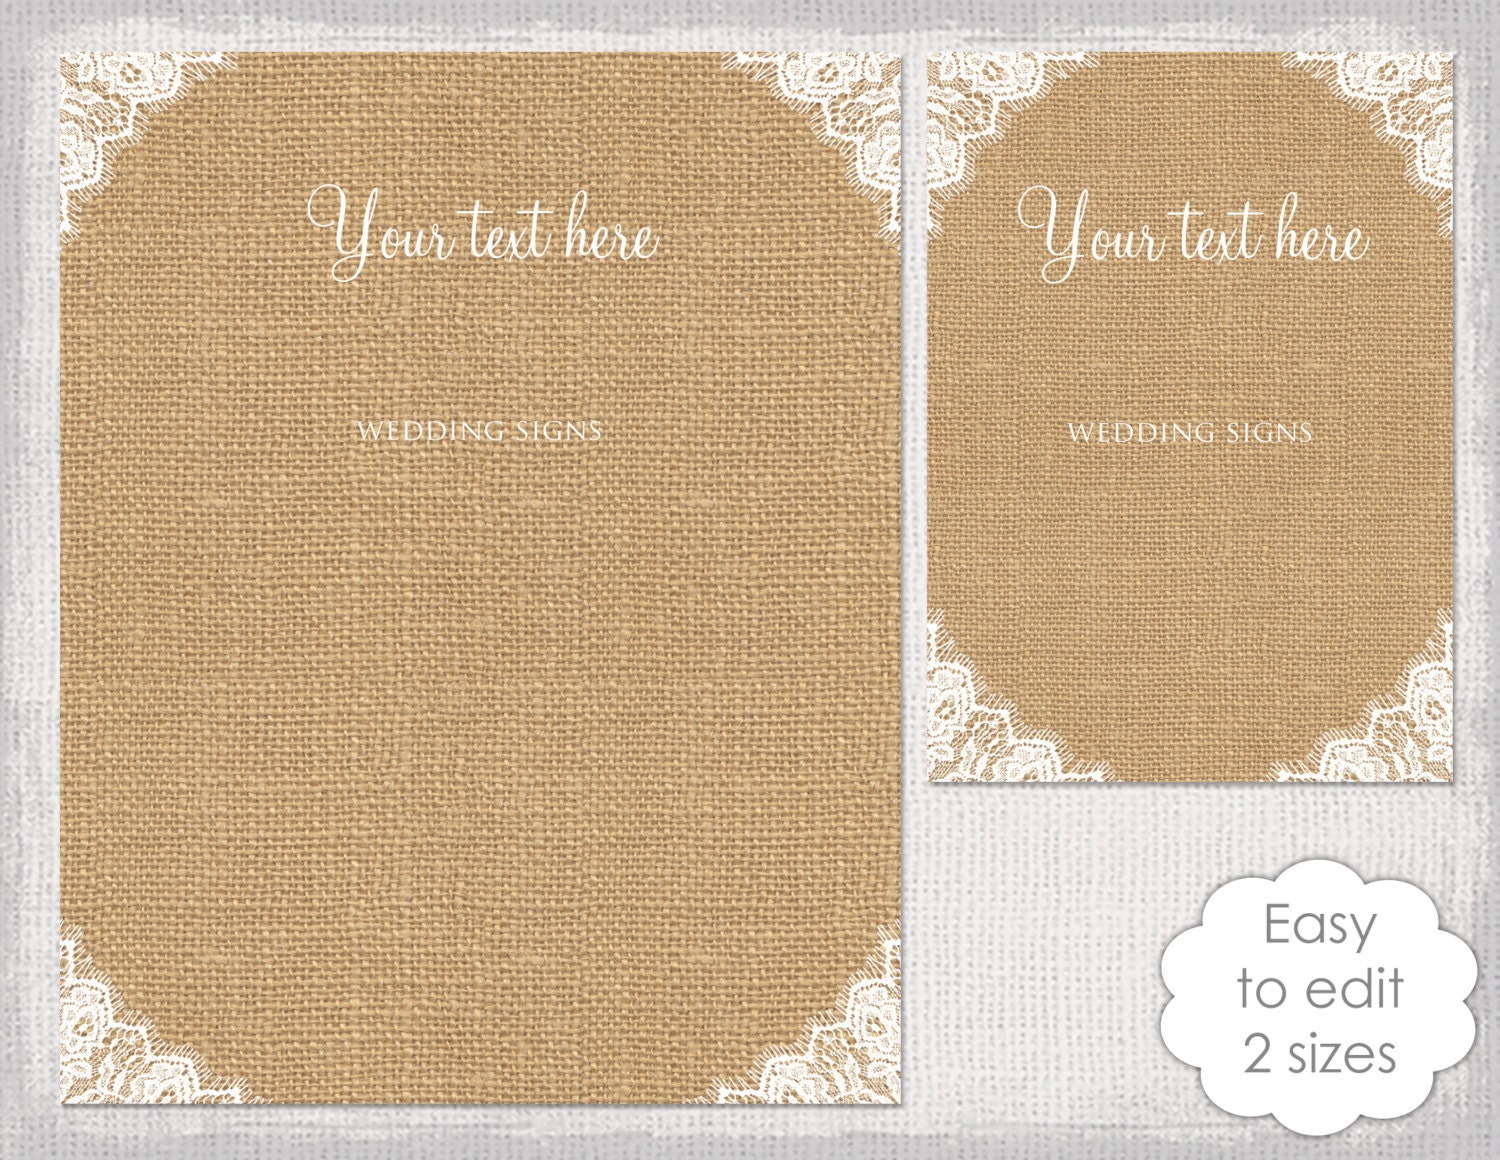 rustic wedding signs printable template diy burlap. Black Bedroom Furniture Sets. Home Design Ideas